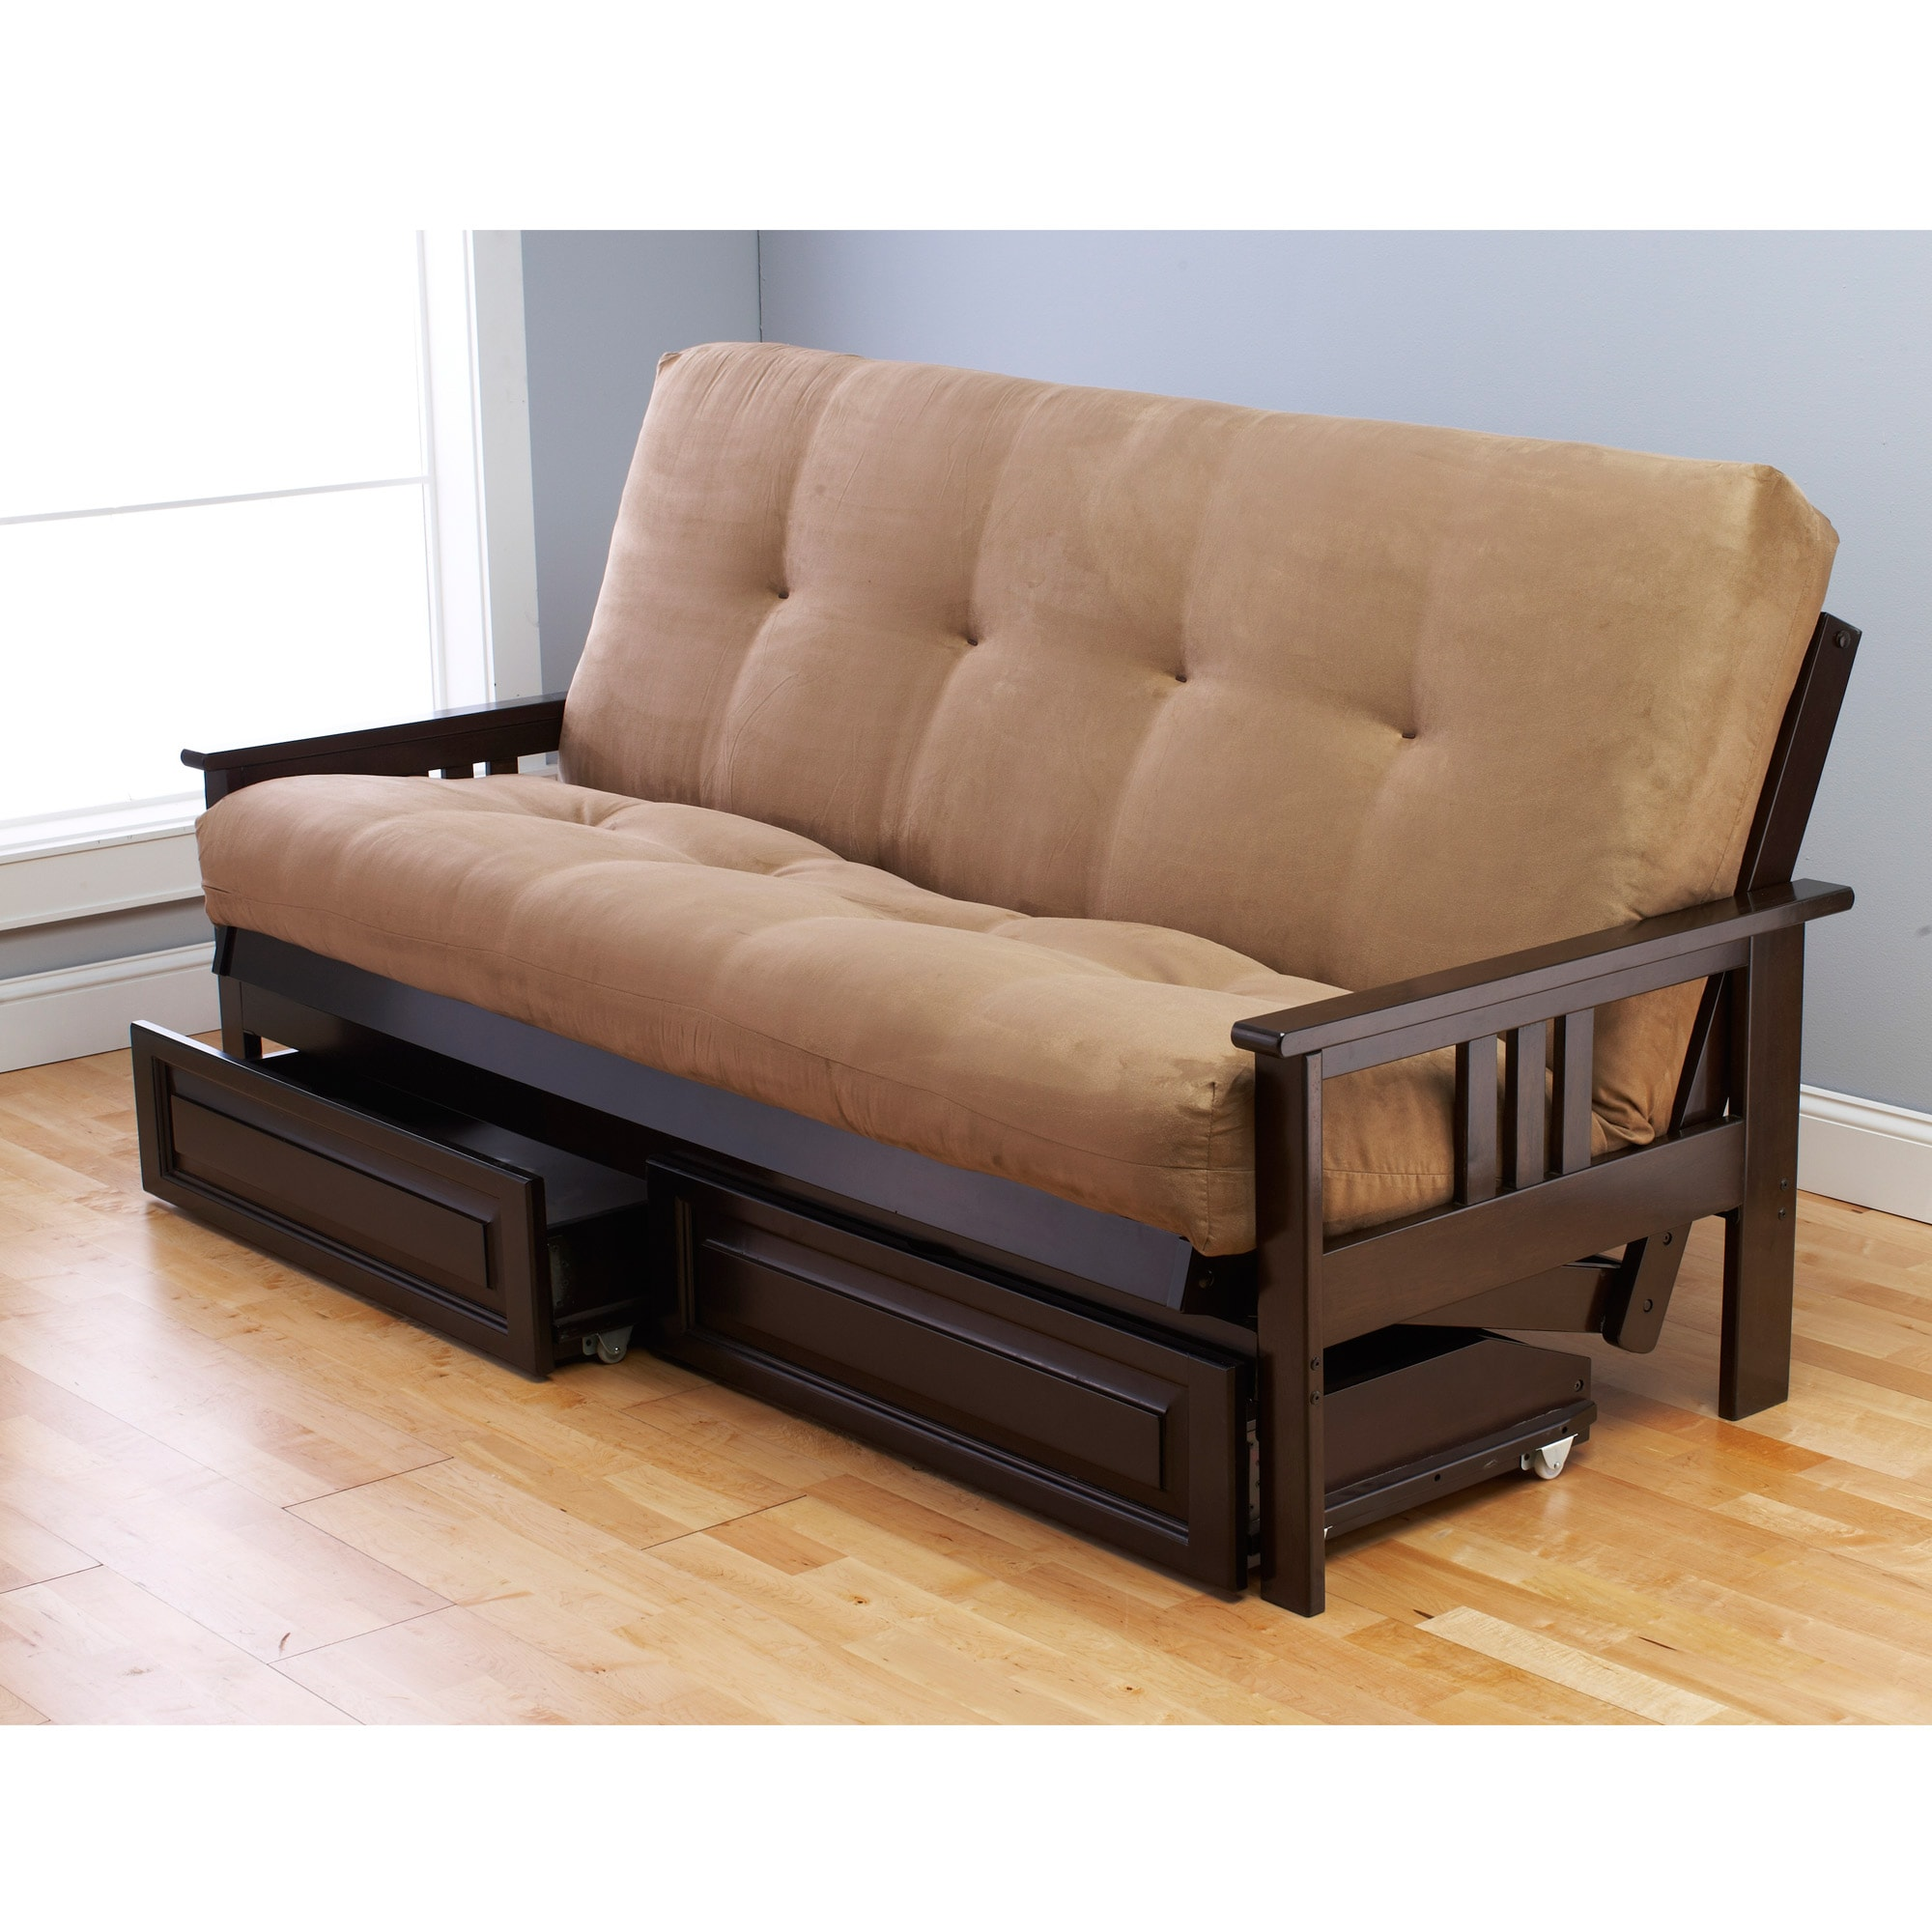 Somette Beli Mont Multi Flex Espresso Hardwood Futon Frame  : Beli Mont Multi Flex Espresso Hardwood Futon Frame Drawers and Mattress Set L14281597 from www.overstock.com size 2000 x 2000 jpeg 398kB